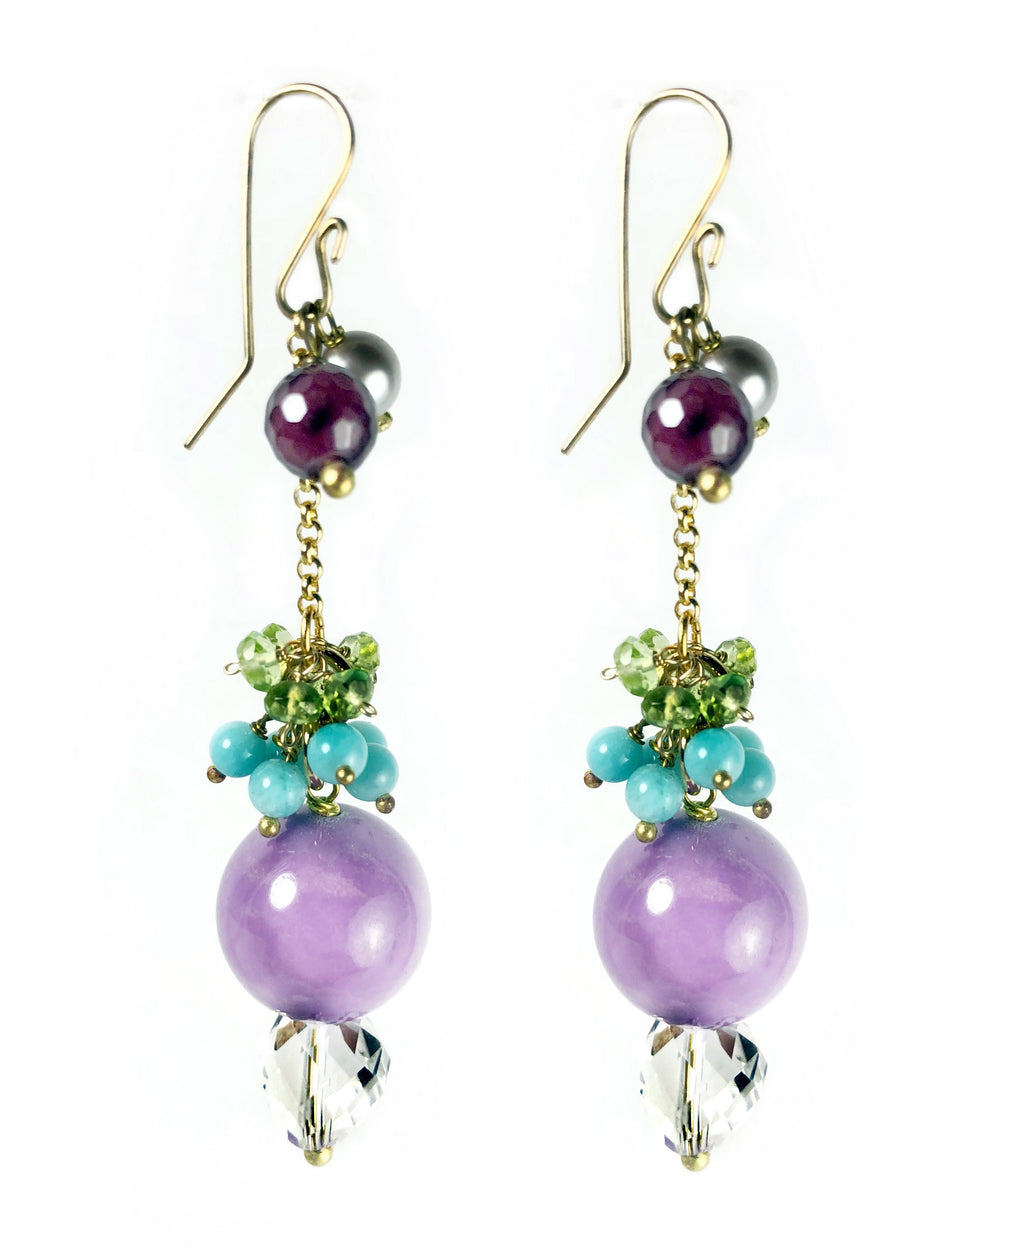 Poison Child Earrings - Terry Schiefer